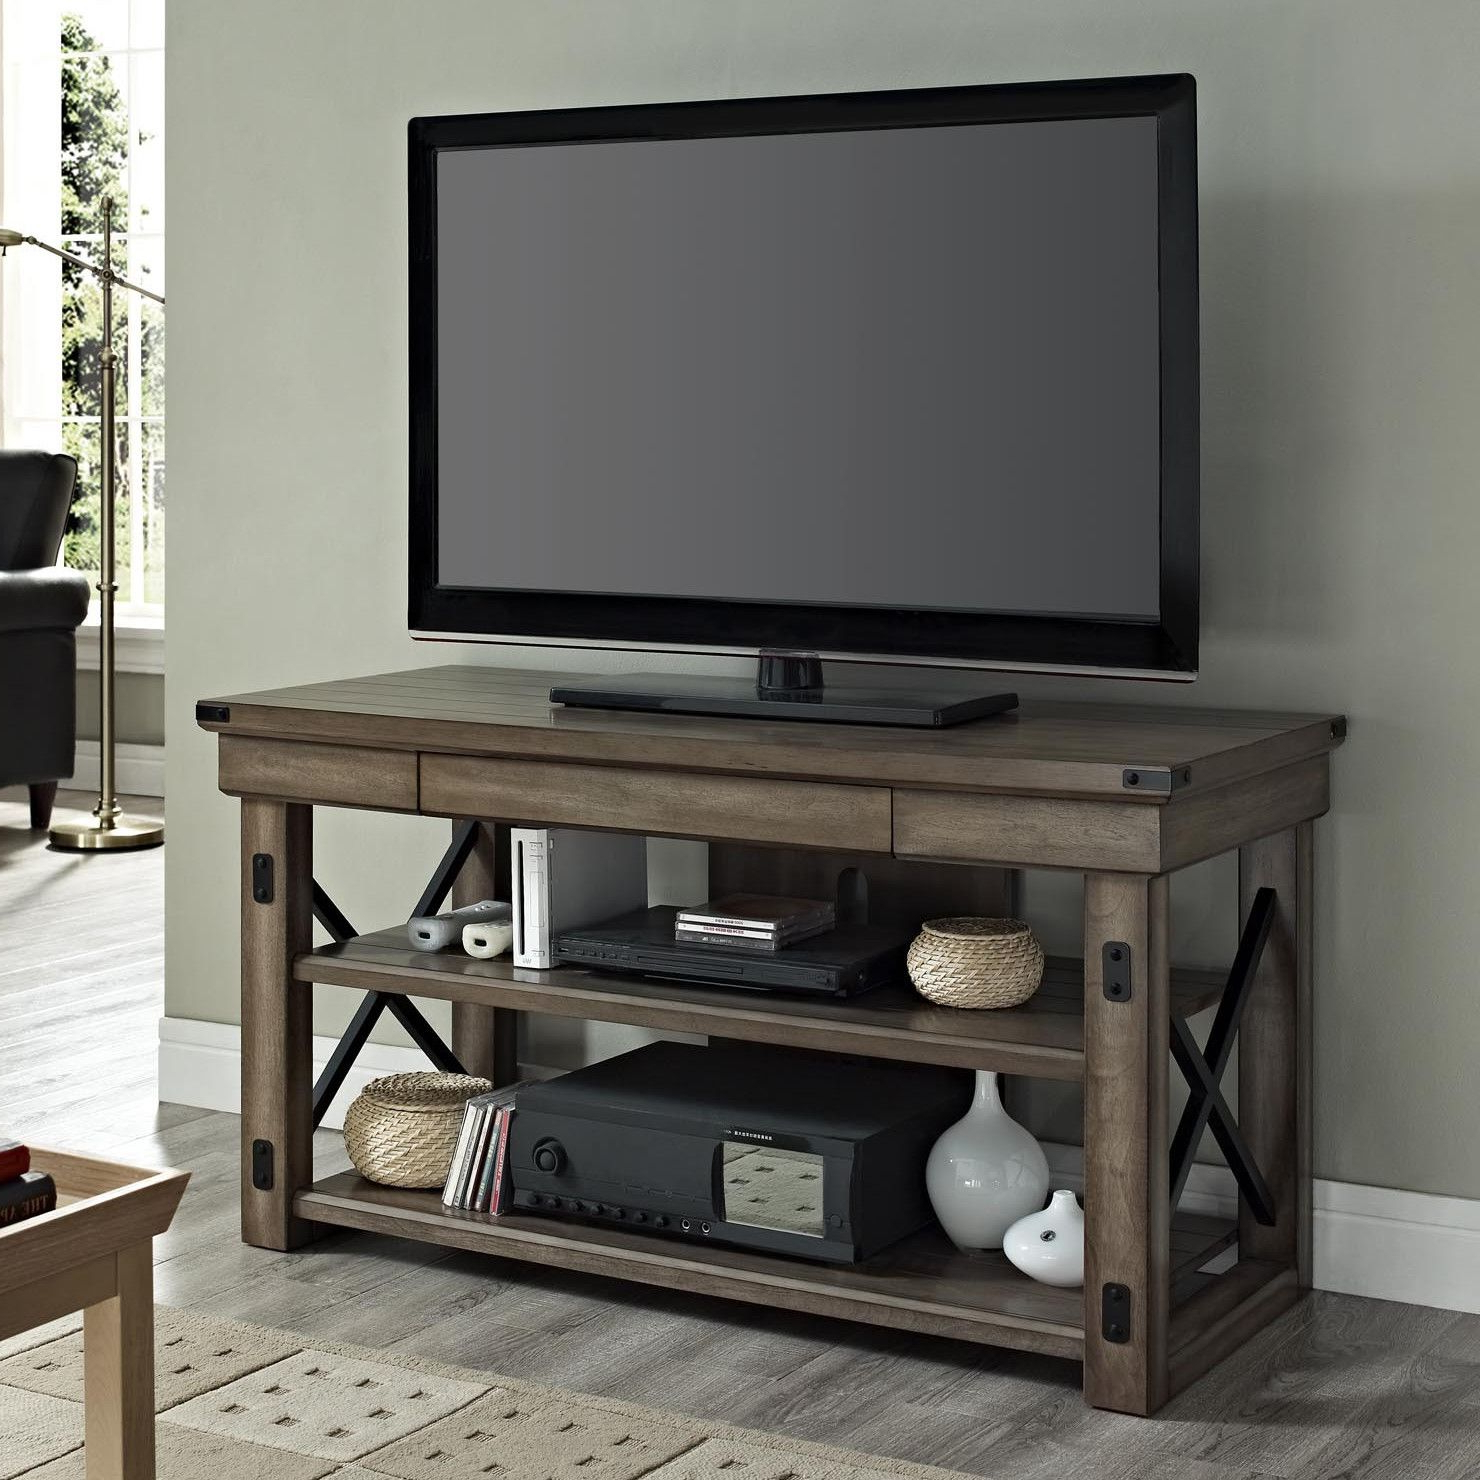 Furniture Within Hokku Tv Stands (View 5 of 20)